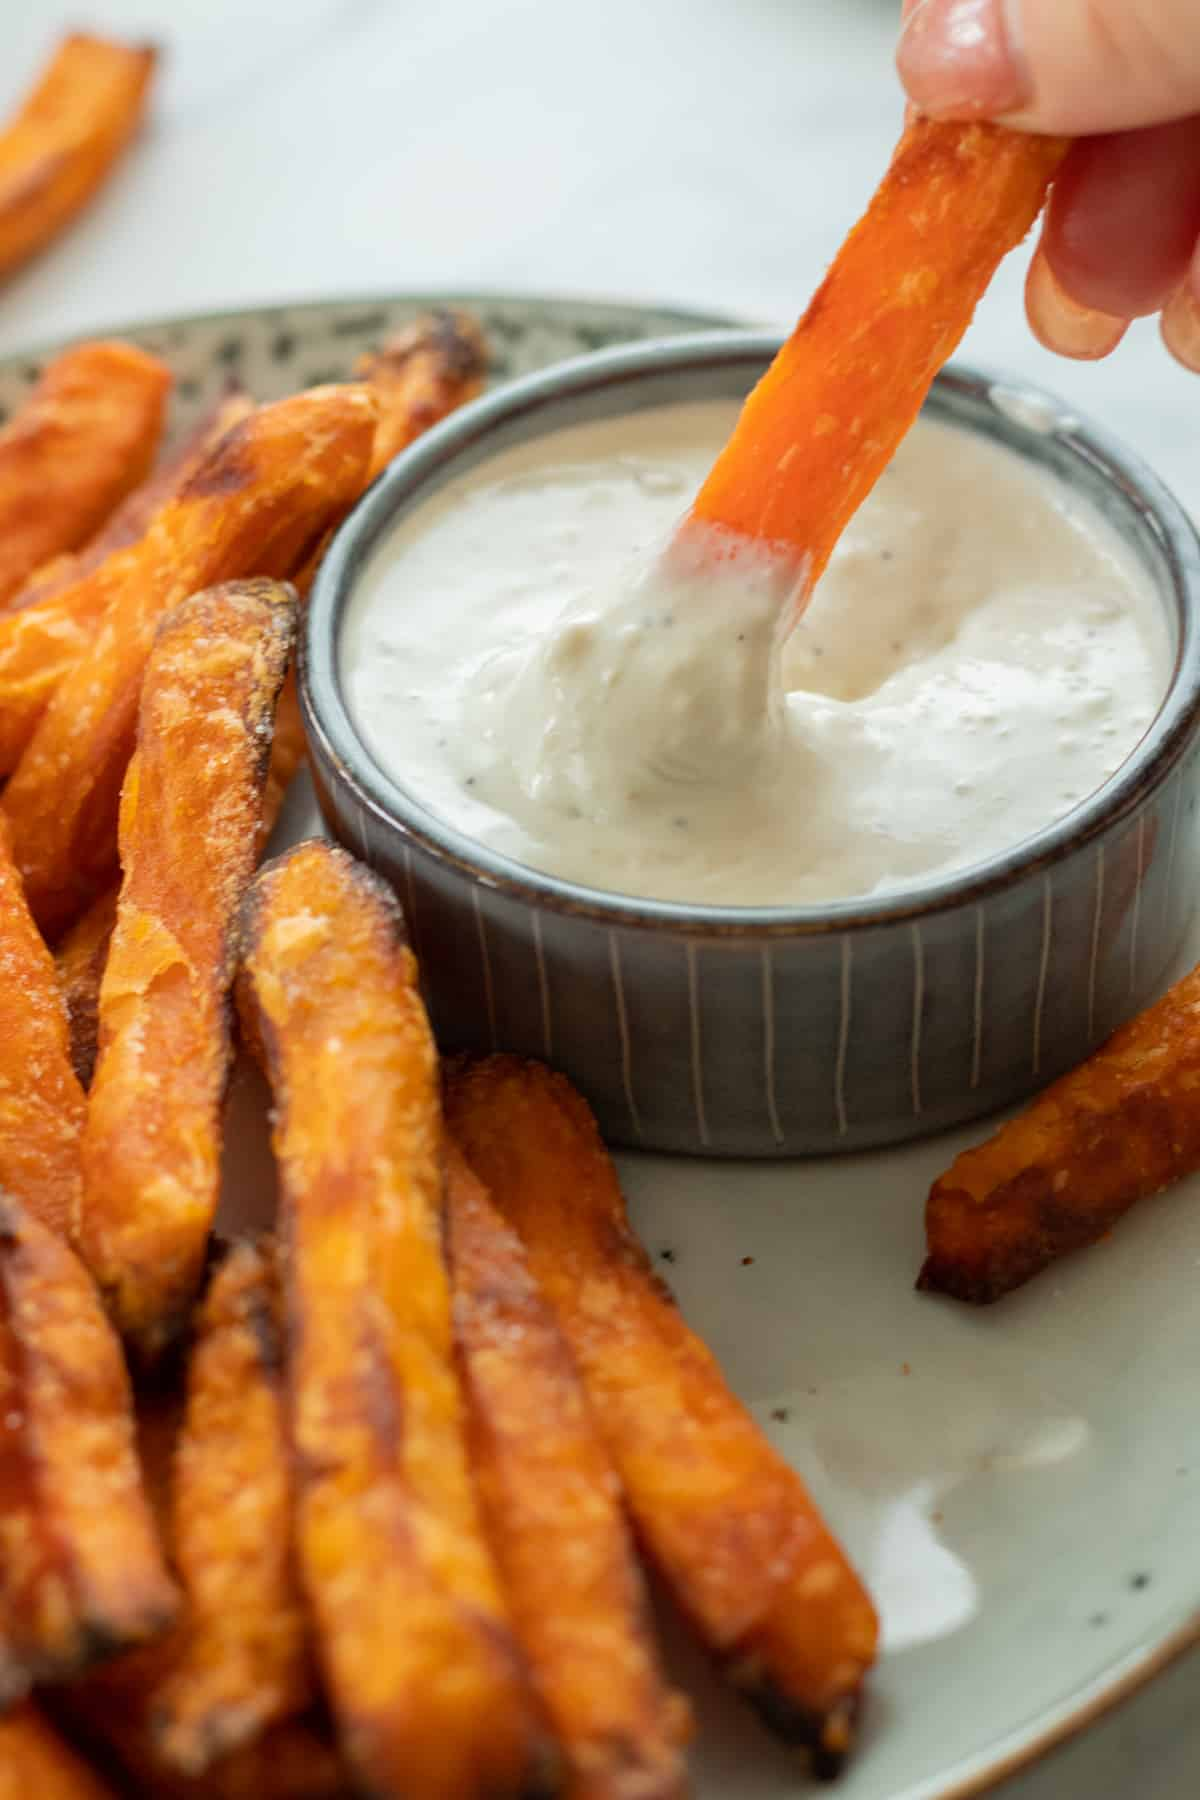 a sweet potato fry being dipped in blue cheese sauce